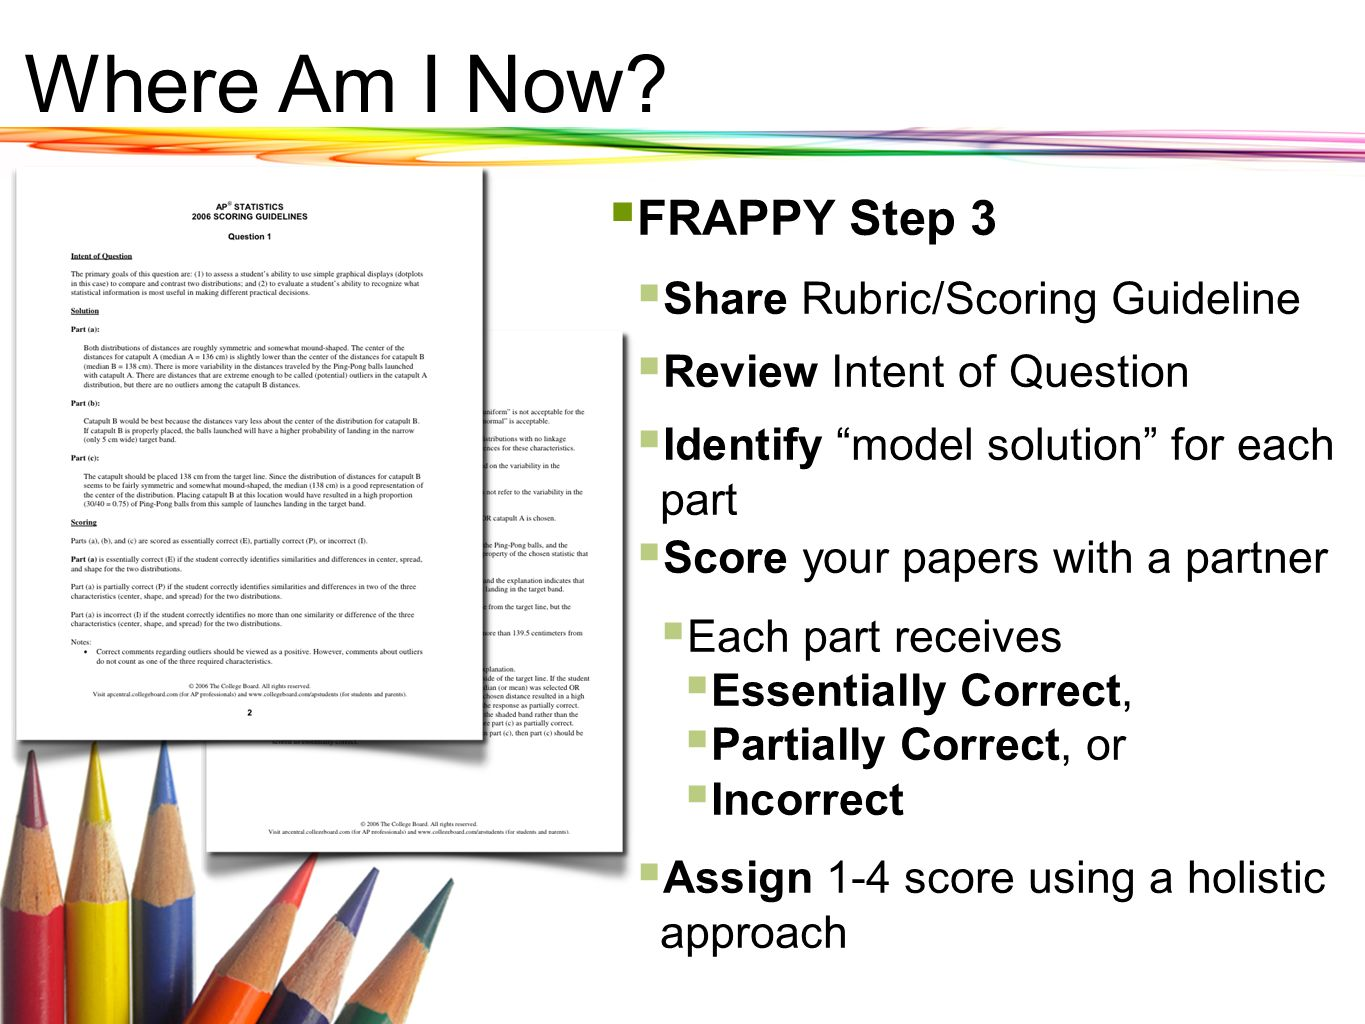 Where Am I Now? FRAPPY Step 3 Share Rubric/Scoring Guideline Review Intent of Question Identify model solution for each part Score your papers with a